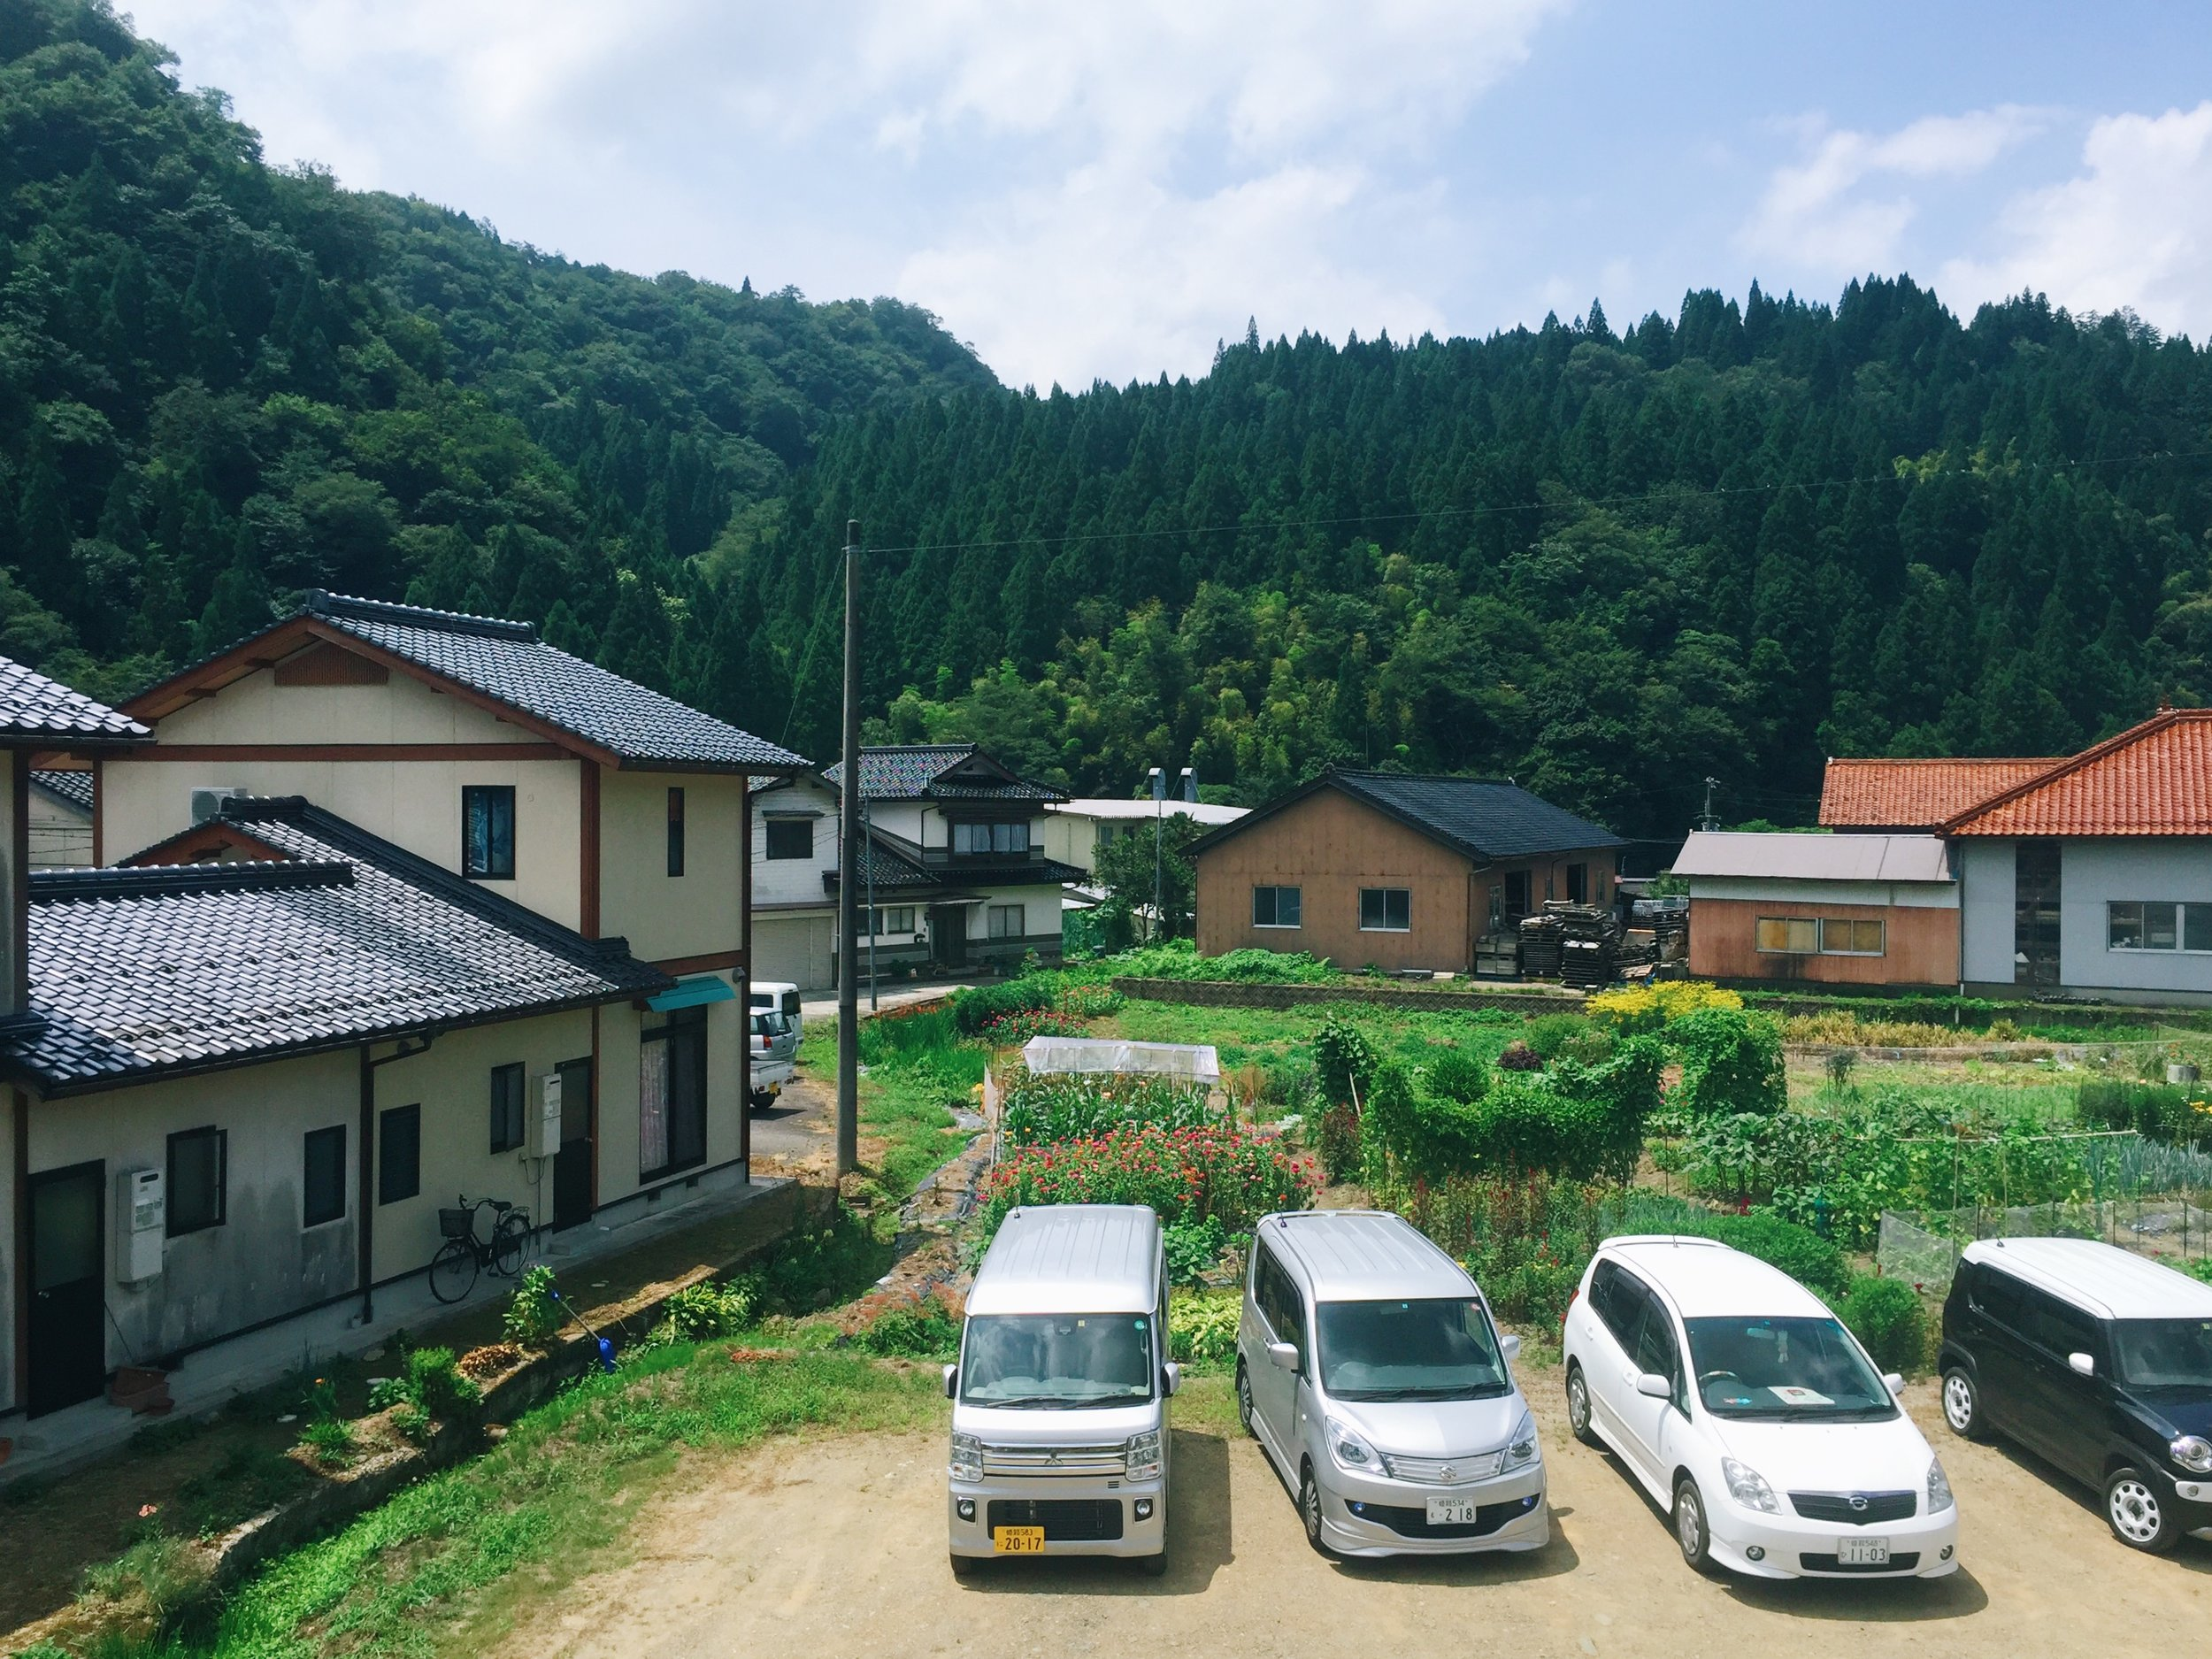 The Japanese countryside during summer